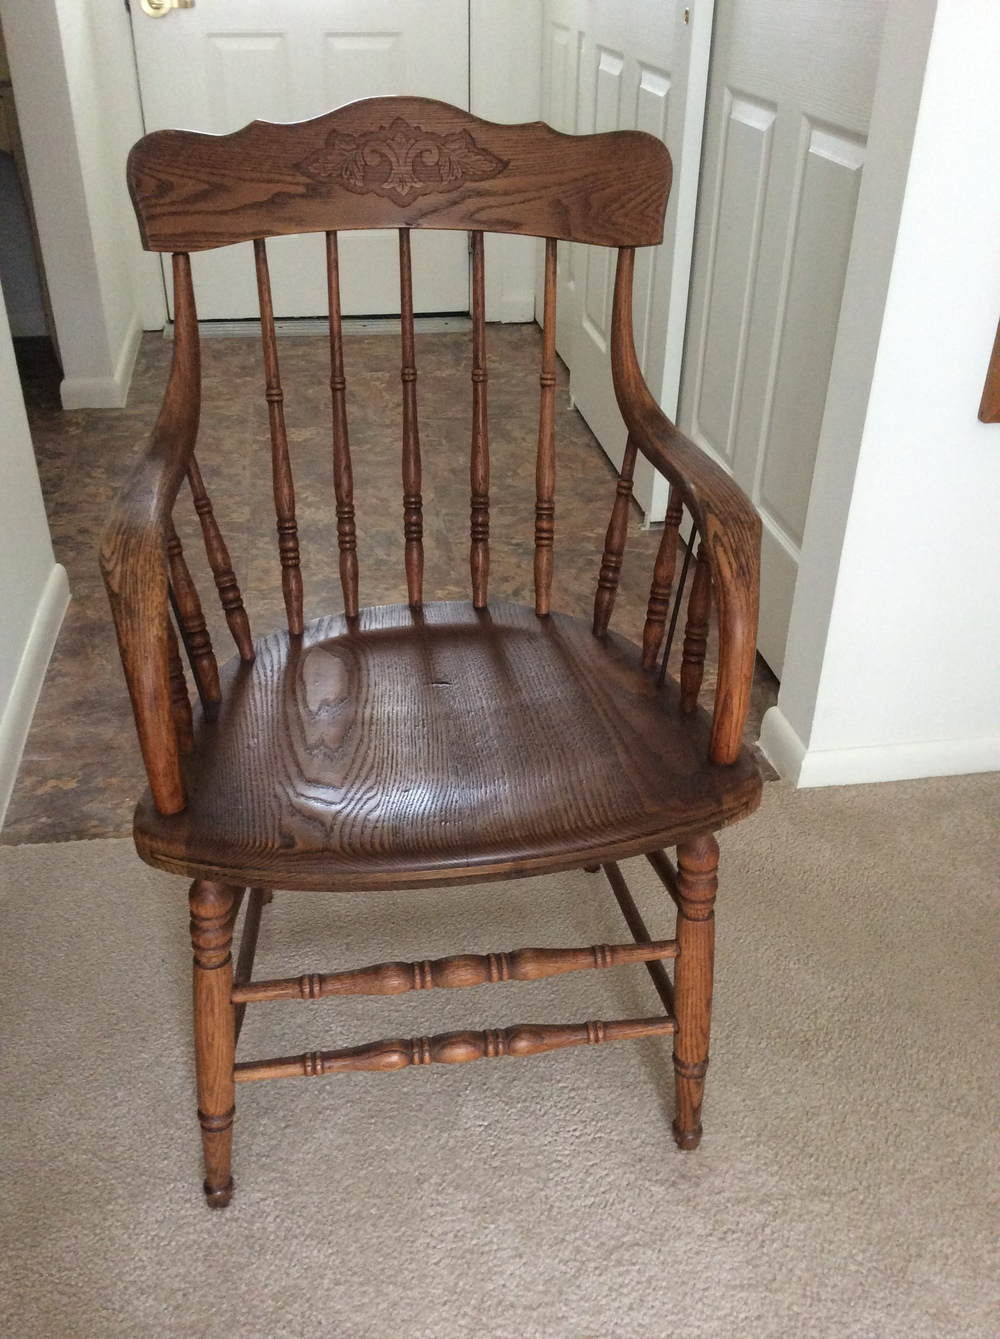 Oak pressed back arm chair, turned spindles, circa 1940.  $50 estimated value